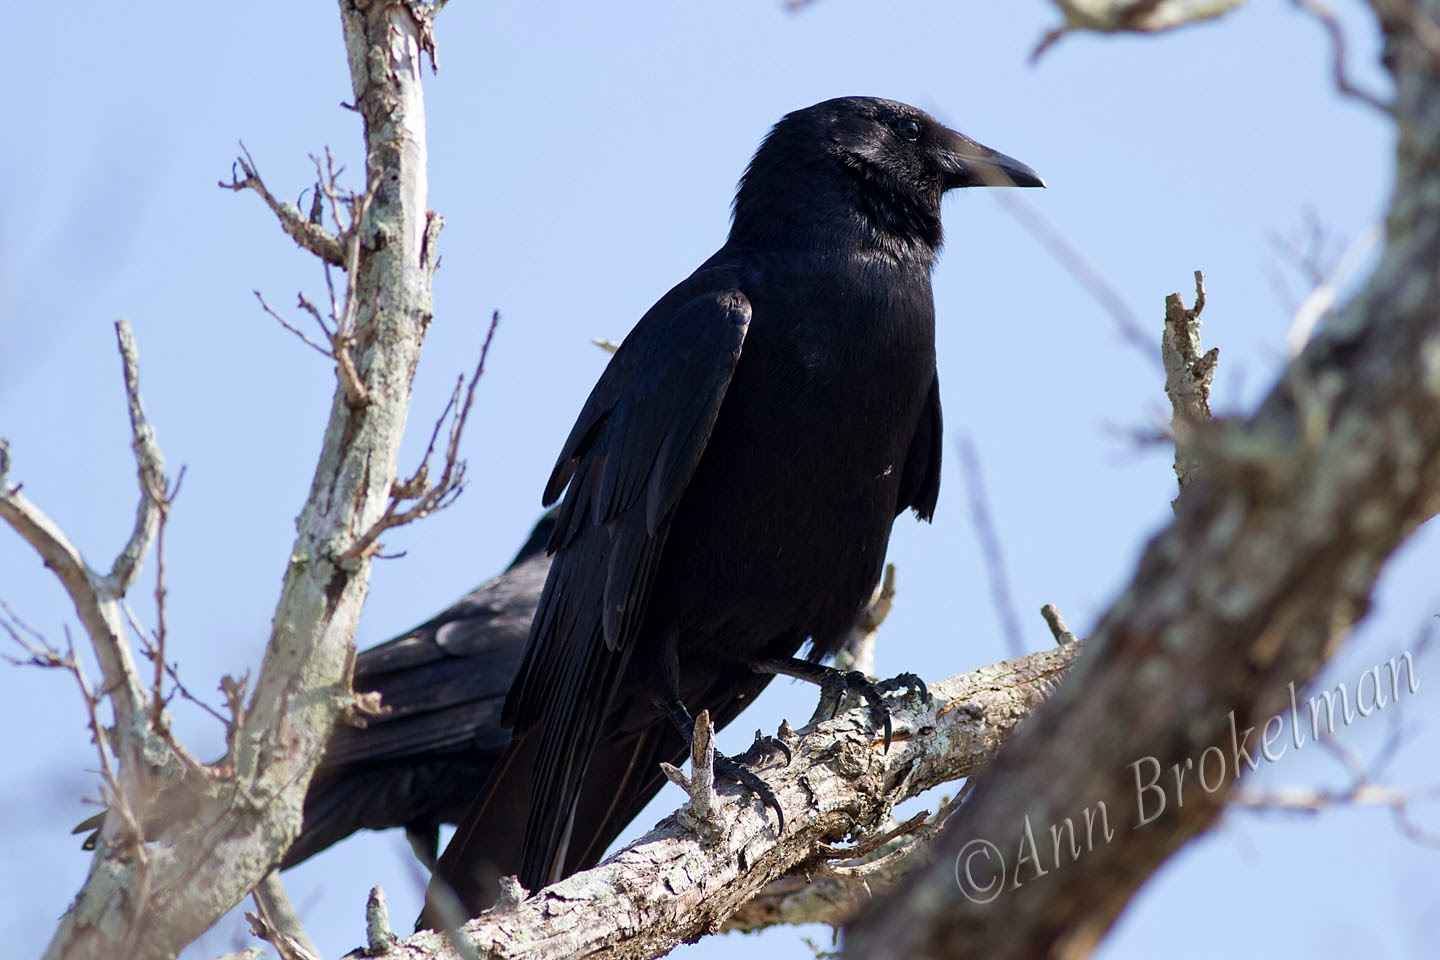 Ann Brokelman Photography: Fish Crow - the sound is really